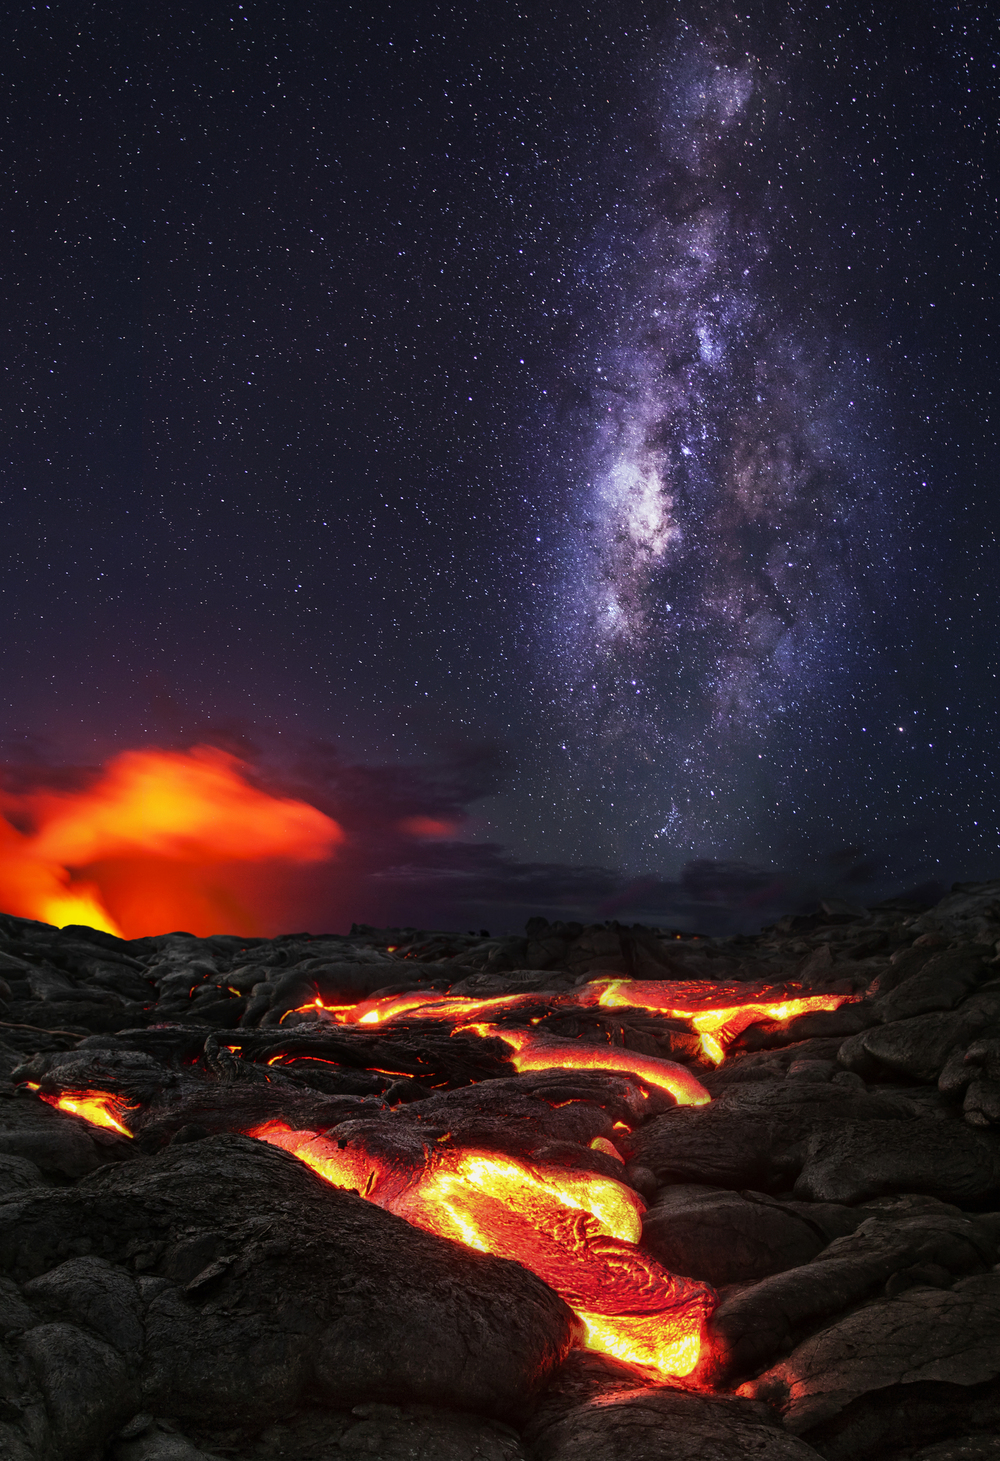 Exposure blend of the Milky Way over lava flow on the Big Island of Hawaii.